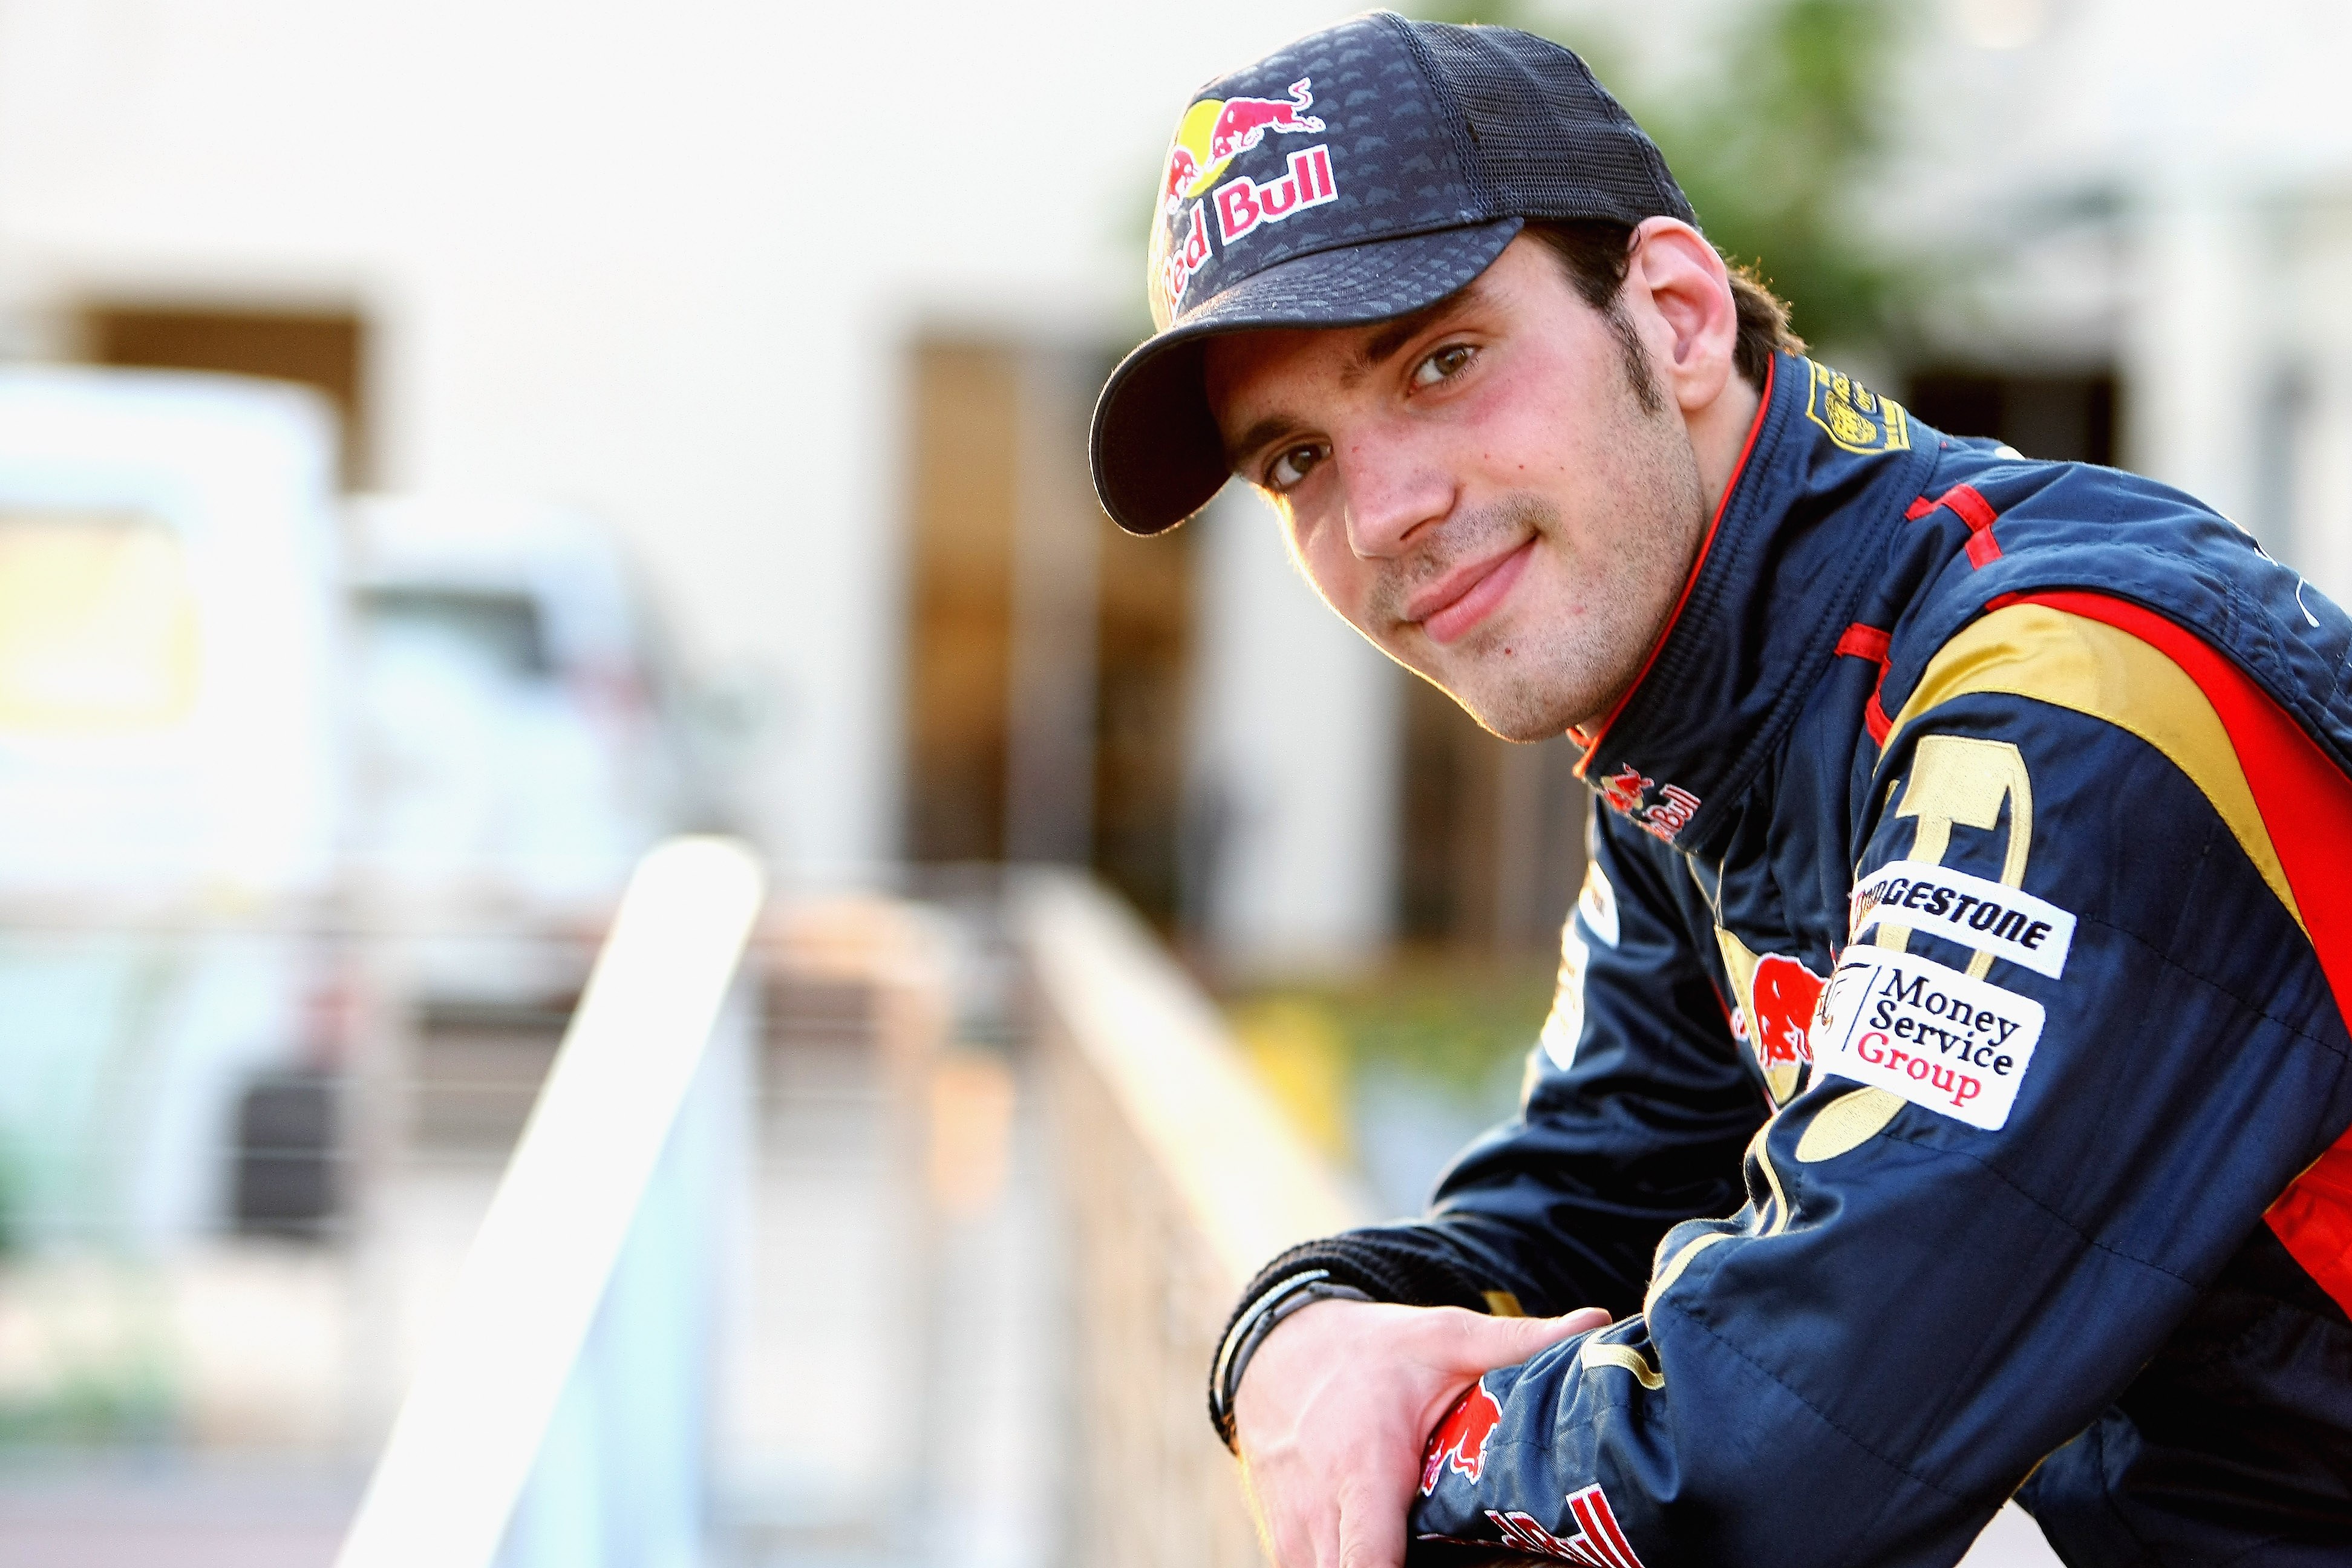 ABU DHABI, UNITED ARAB EMIRATES - NOVEMBER 16:  Jean-Eric Vergne of France and Scuderia Toro Rosso poses for a picture during the Young Driver Testing at the Yas Marina Circuit on November 16, 2010 in Abu Dhabi, United Arab Emirates.  (Photo by Andrew Hon